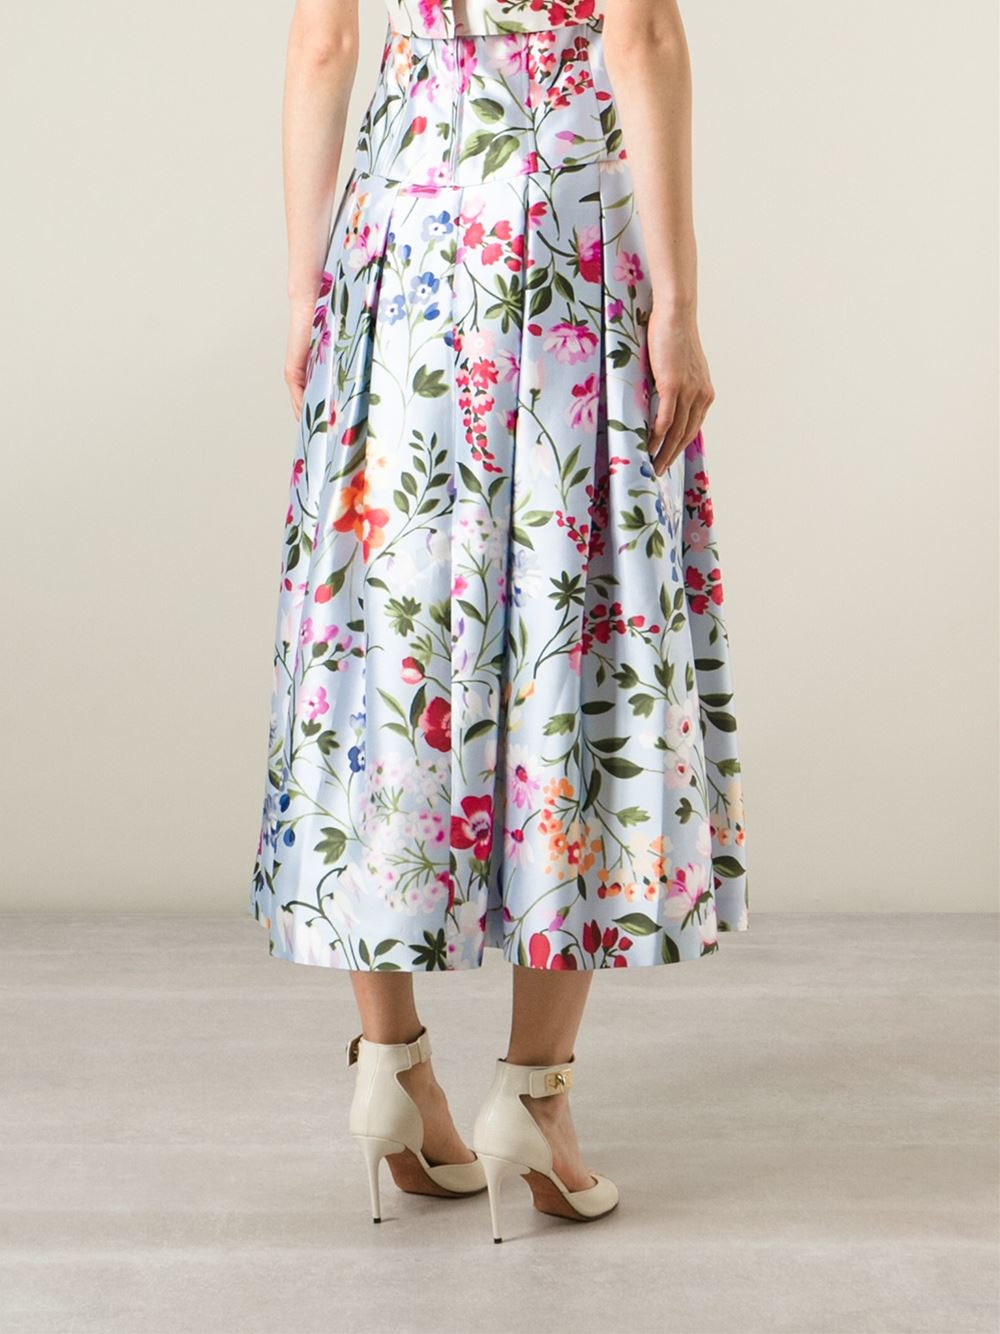 07a2d27590 Oscar de la Renta Floral Print Pleated Skirt in Blue - Lyst